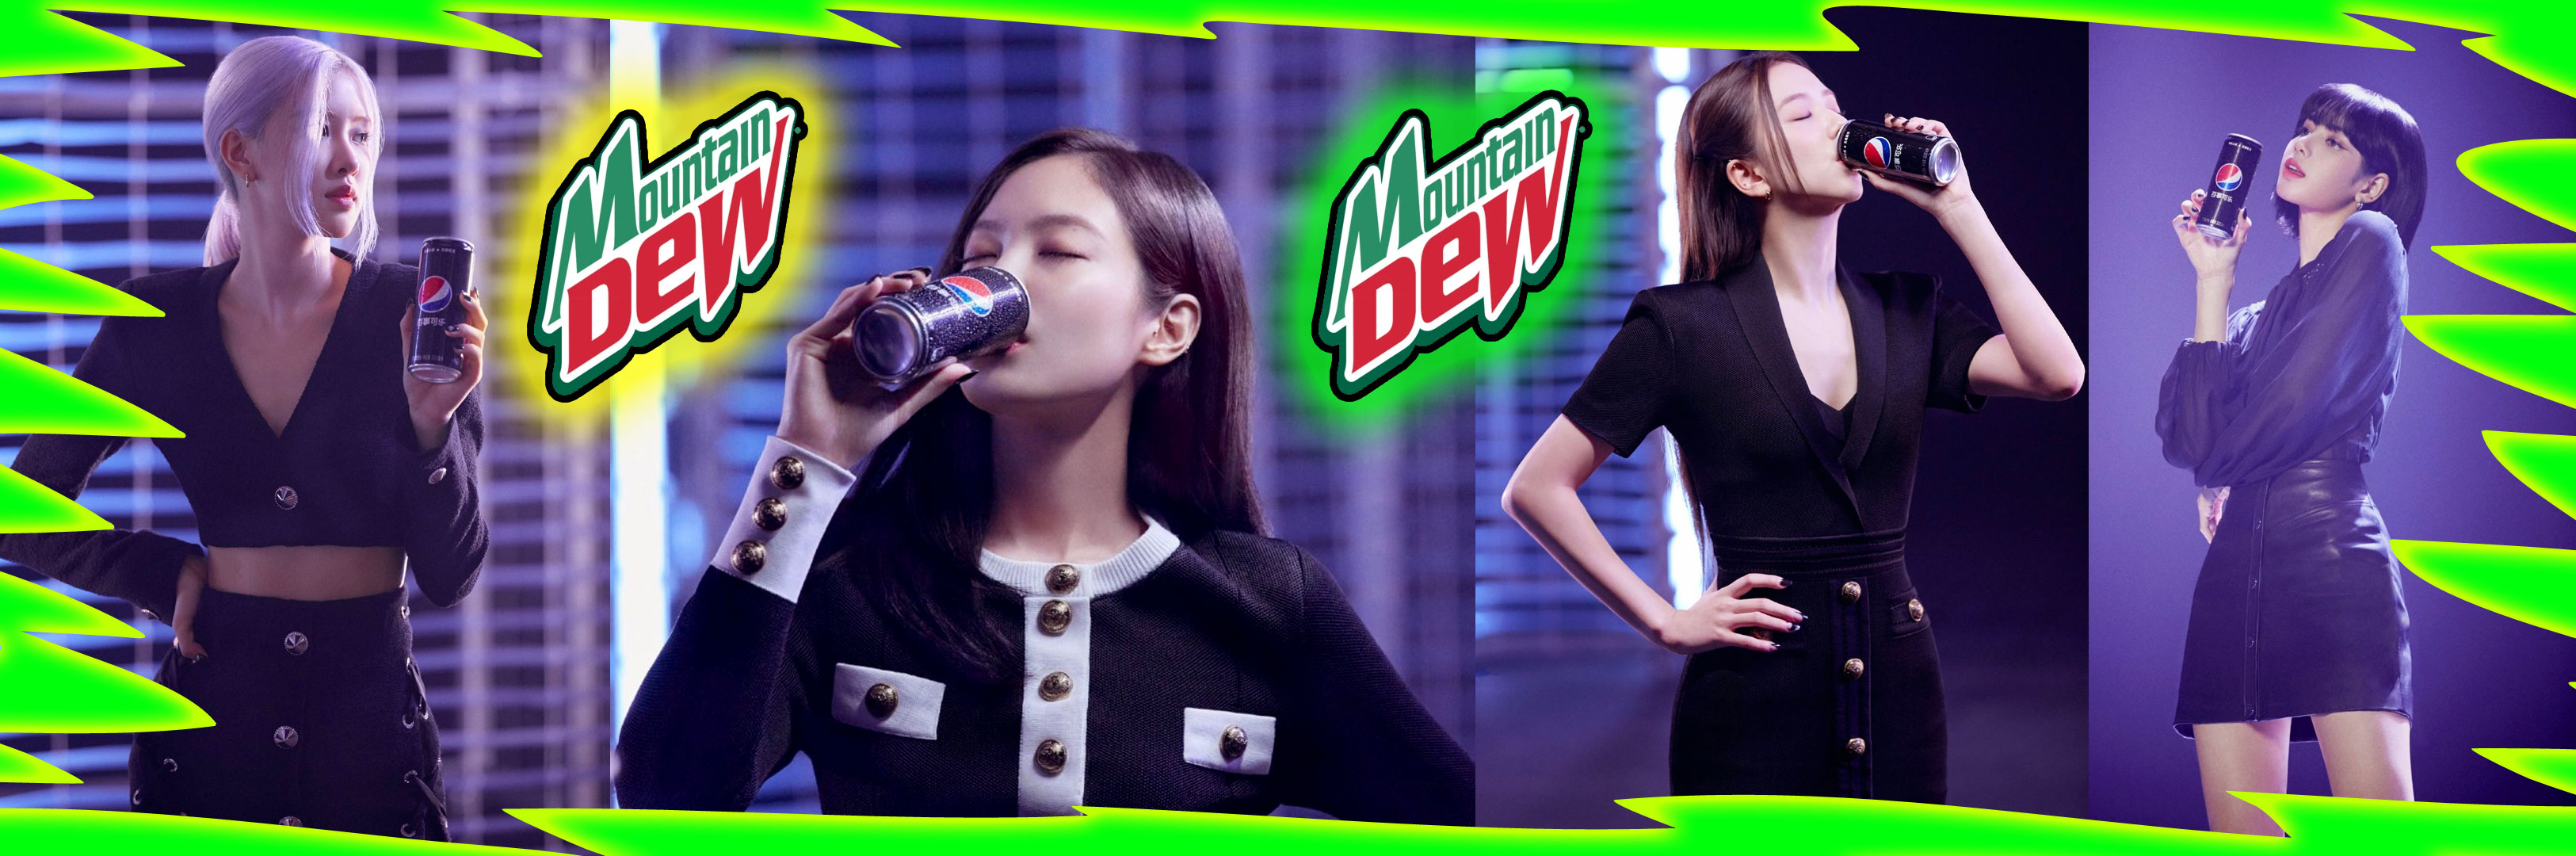 I wish Blackpink were in Mt. Dew ads